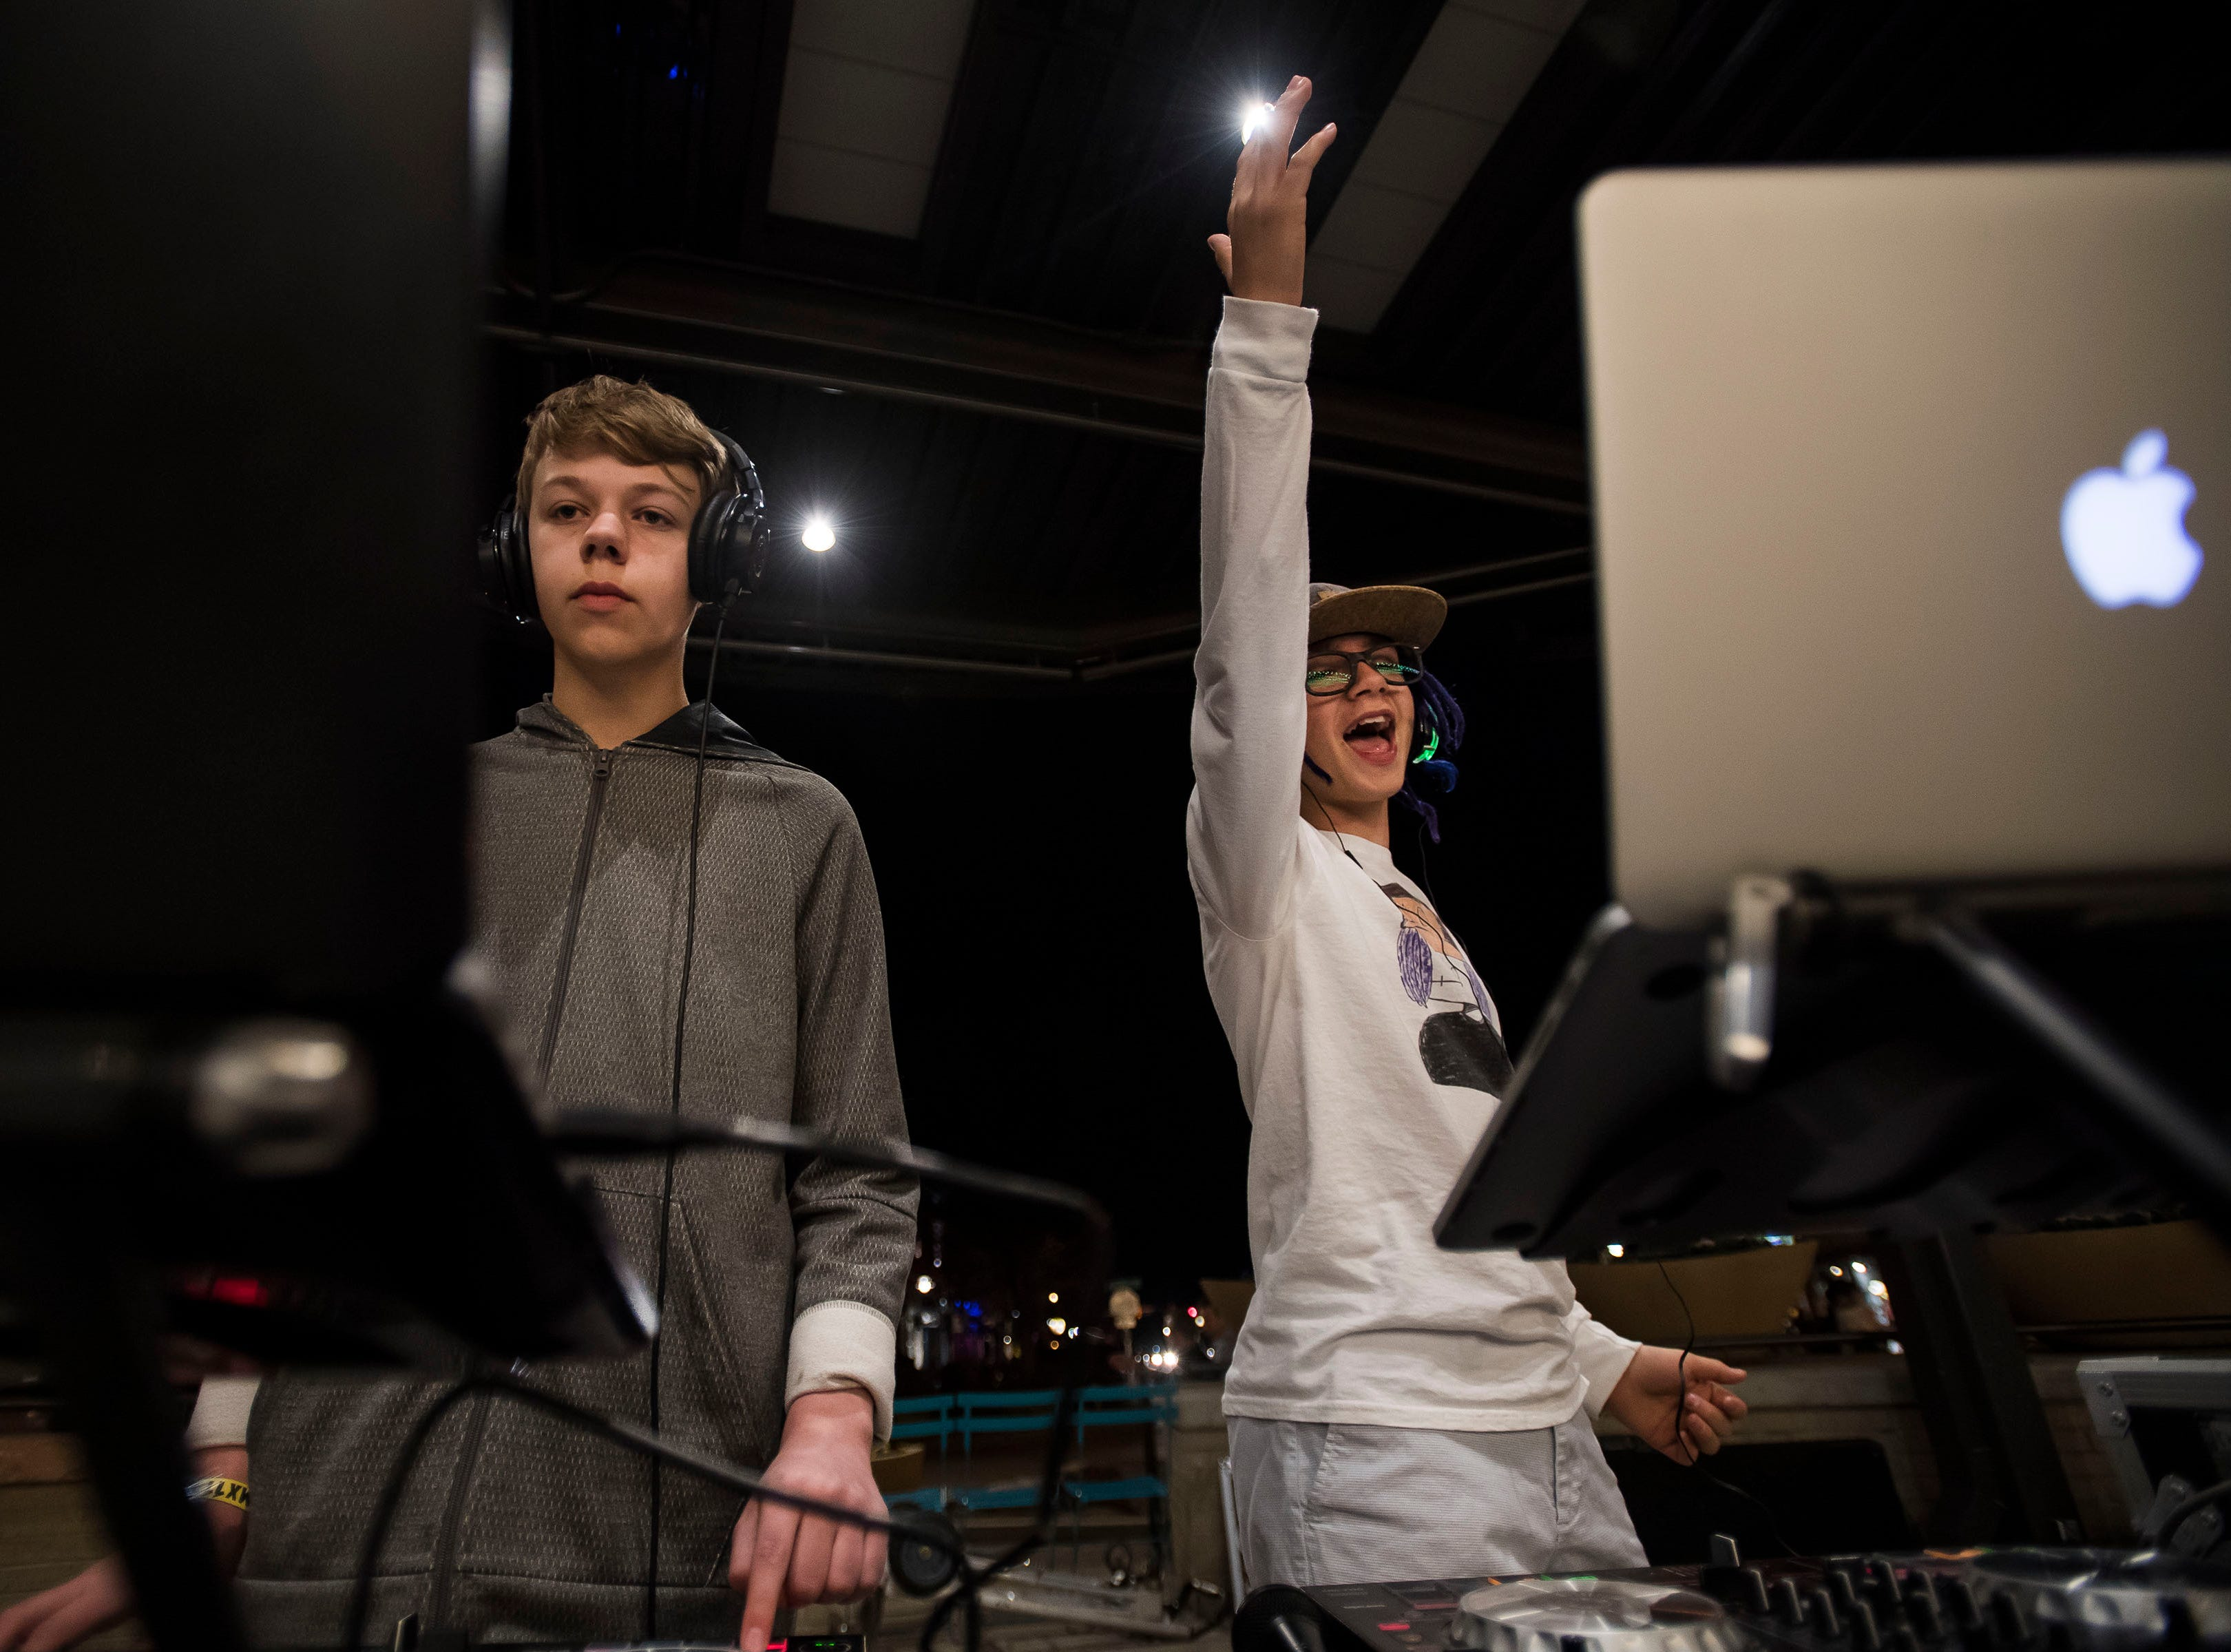 DJs NOLLIJ, left and Blakeye, right, perform at the Sound Off Silent Disco at Old Town Square during the FoCoMX XI music festival on Friday, April 26, 2019, in Fort Collins, Colo.